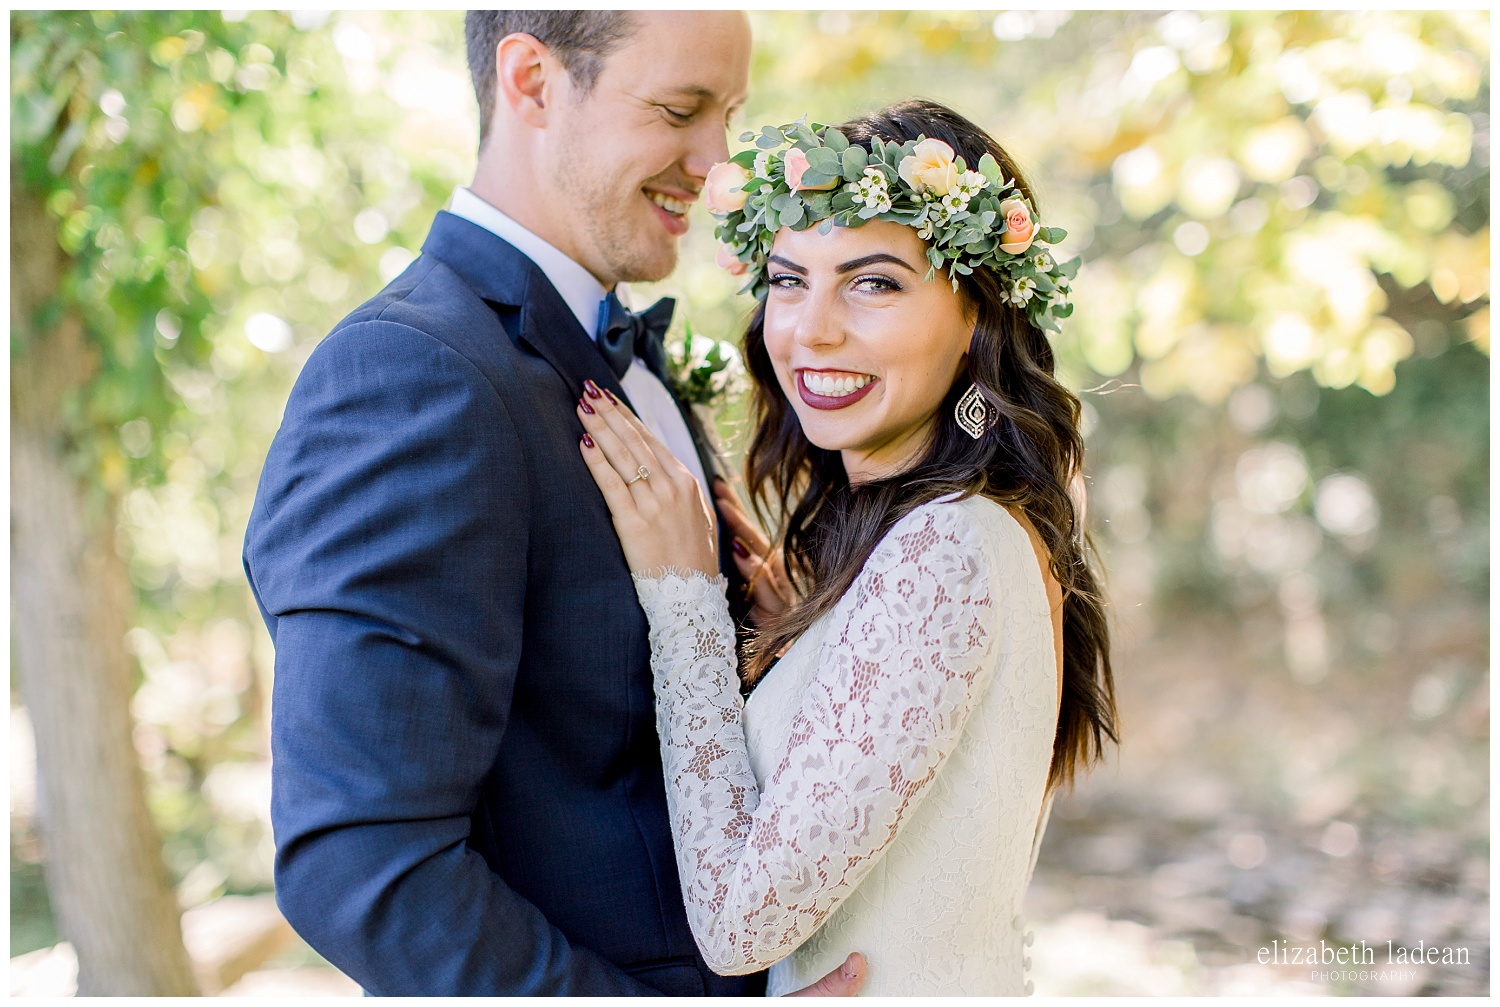 Willow-Creek-Blush-and-Blues-Outdoor-Wedding-Photography-S+Z2018-elizabeth-ladean-photography-photo_0536.jpg